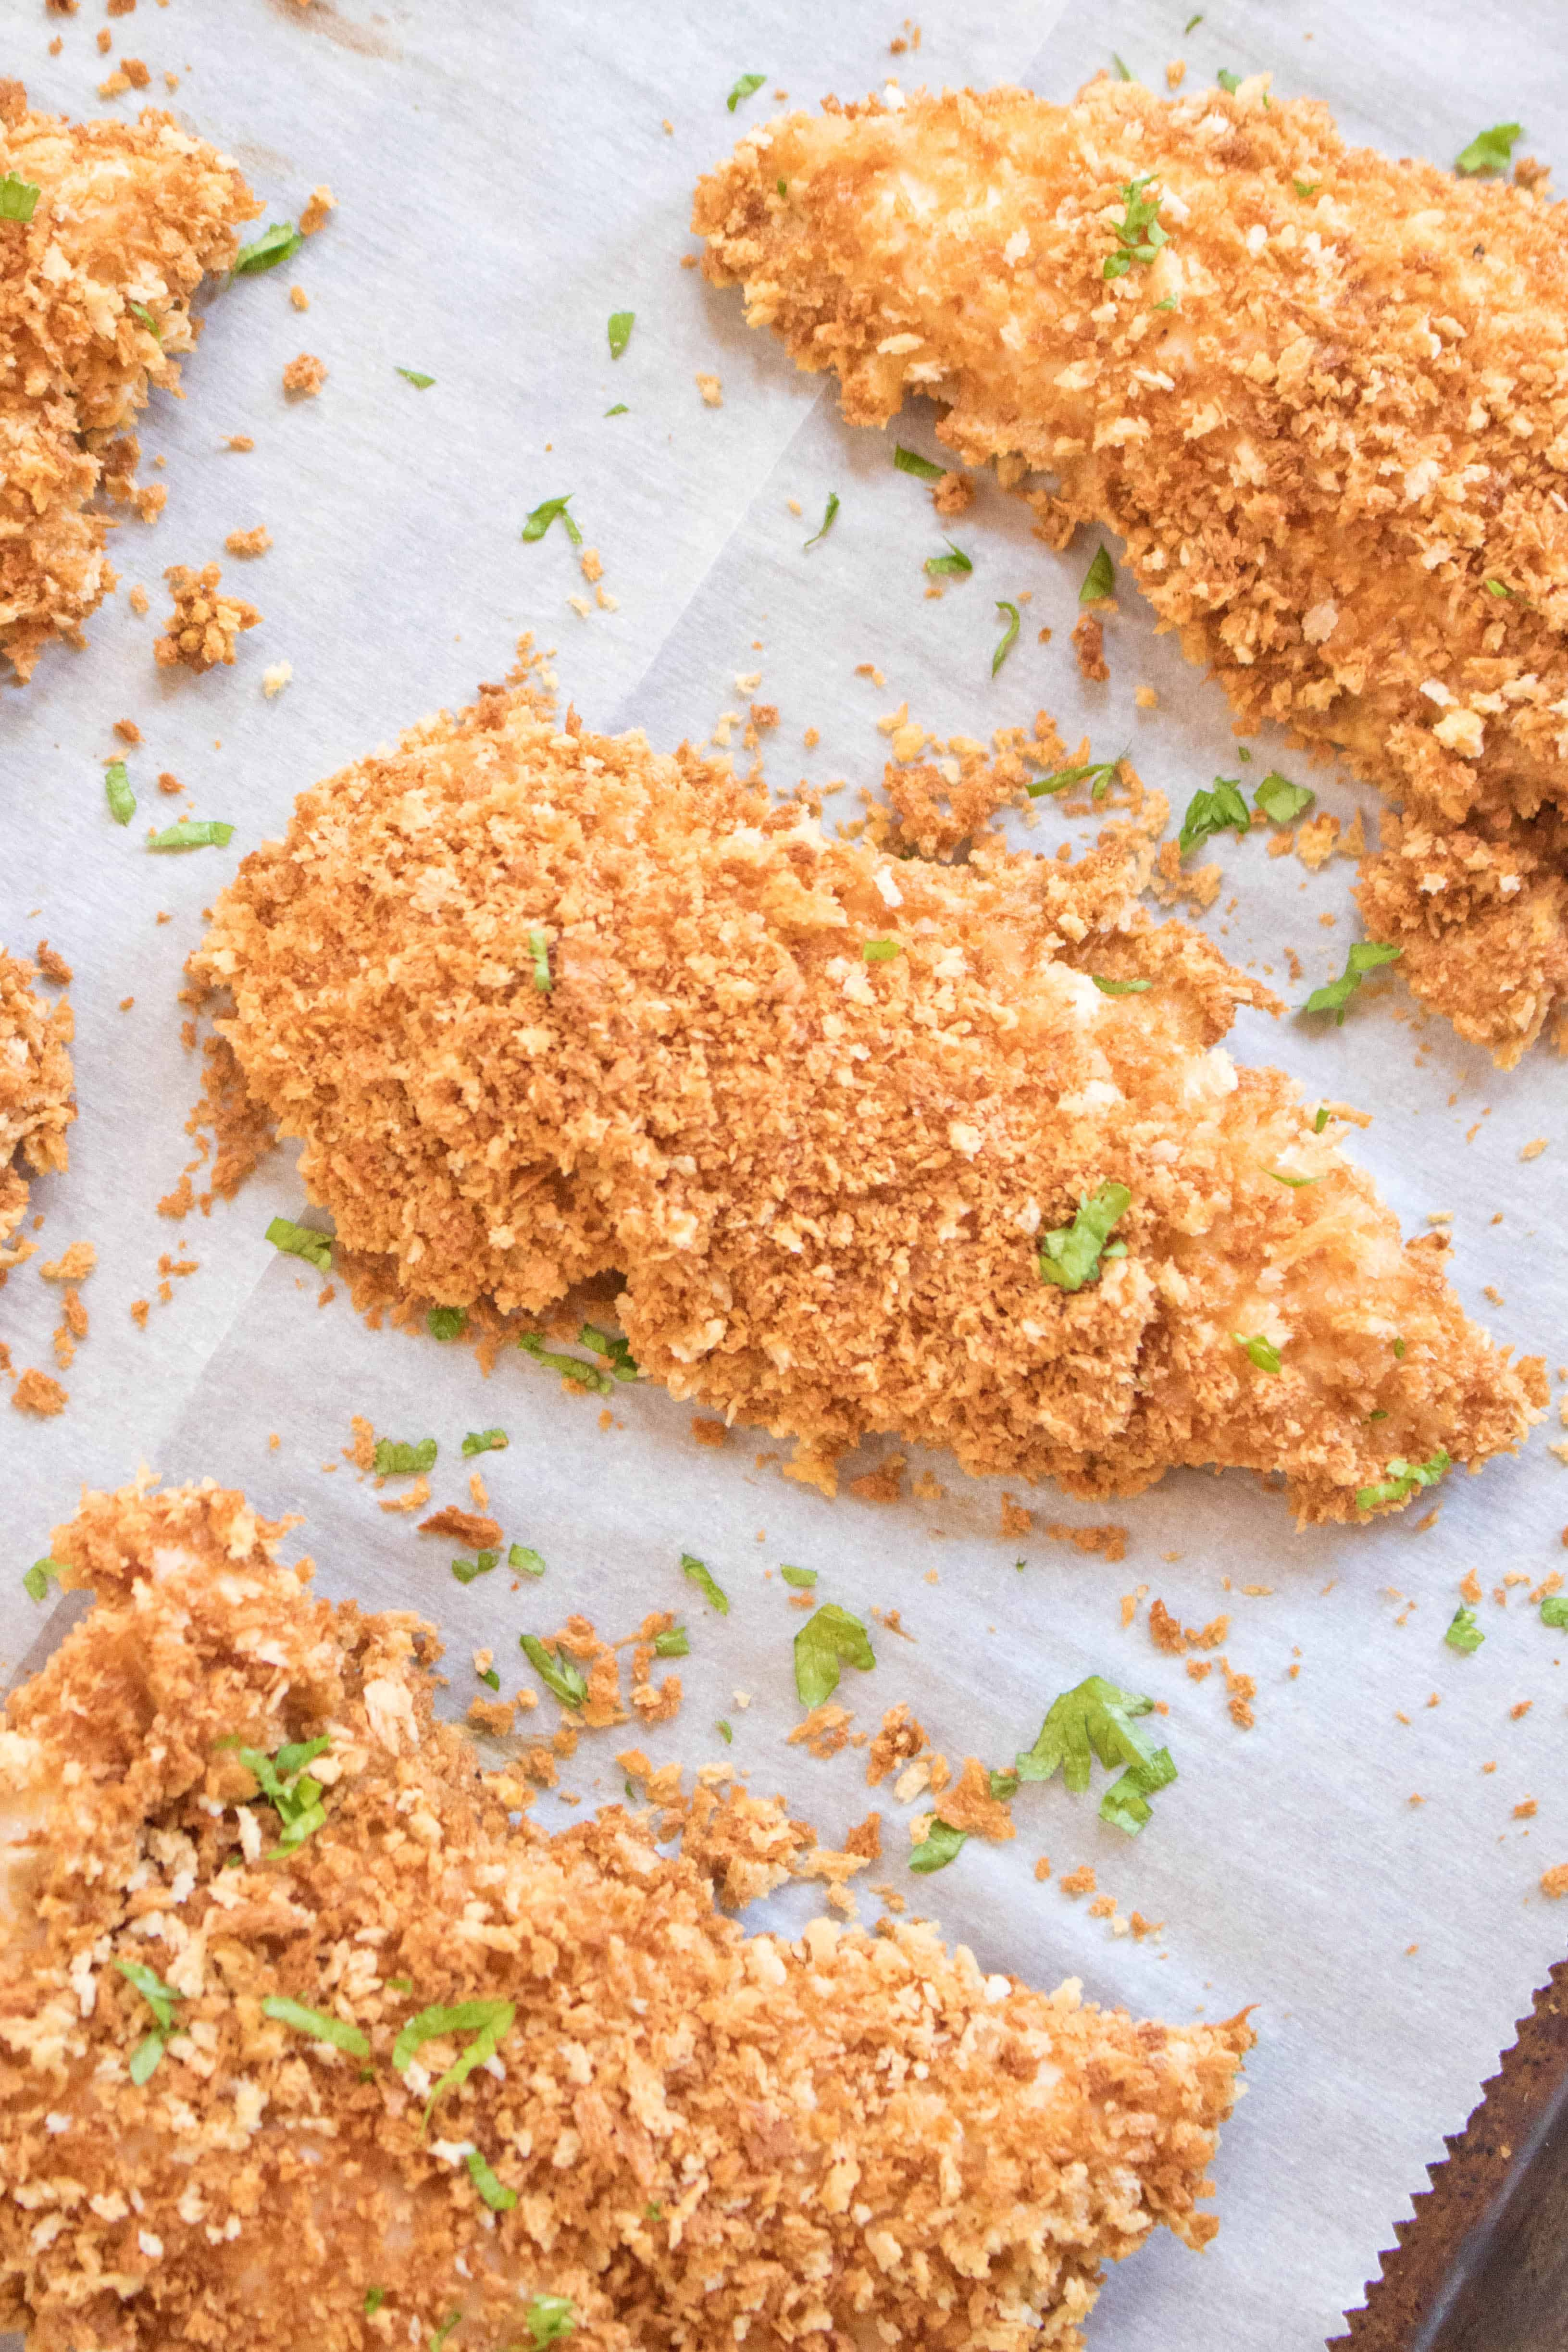 Baked Panko Chicken Tenders